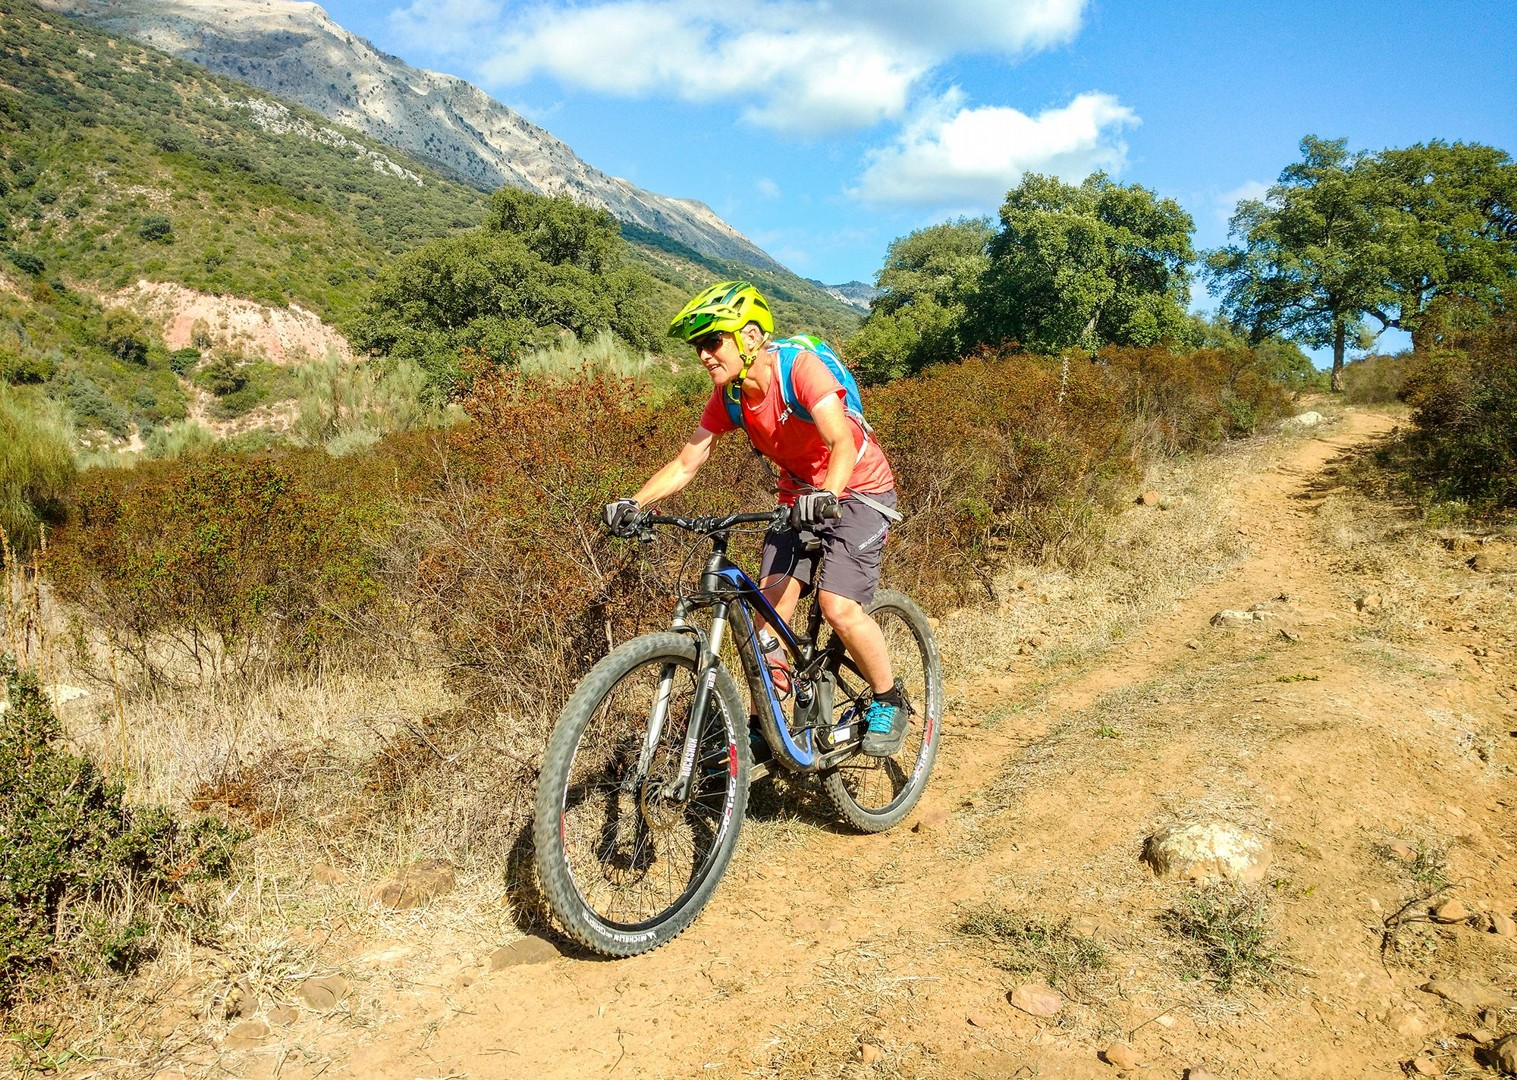 transandaluz17.jpg - Spain - Trans Andaluz - Guided Mountain Bike Holiday - Mountain Biking